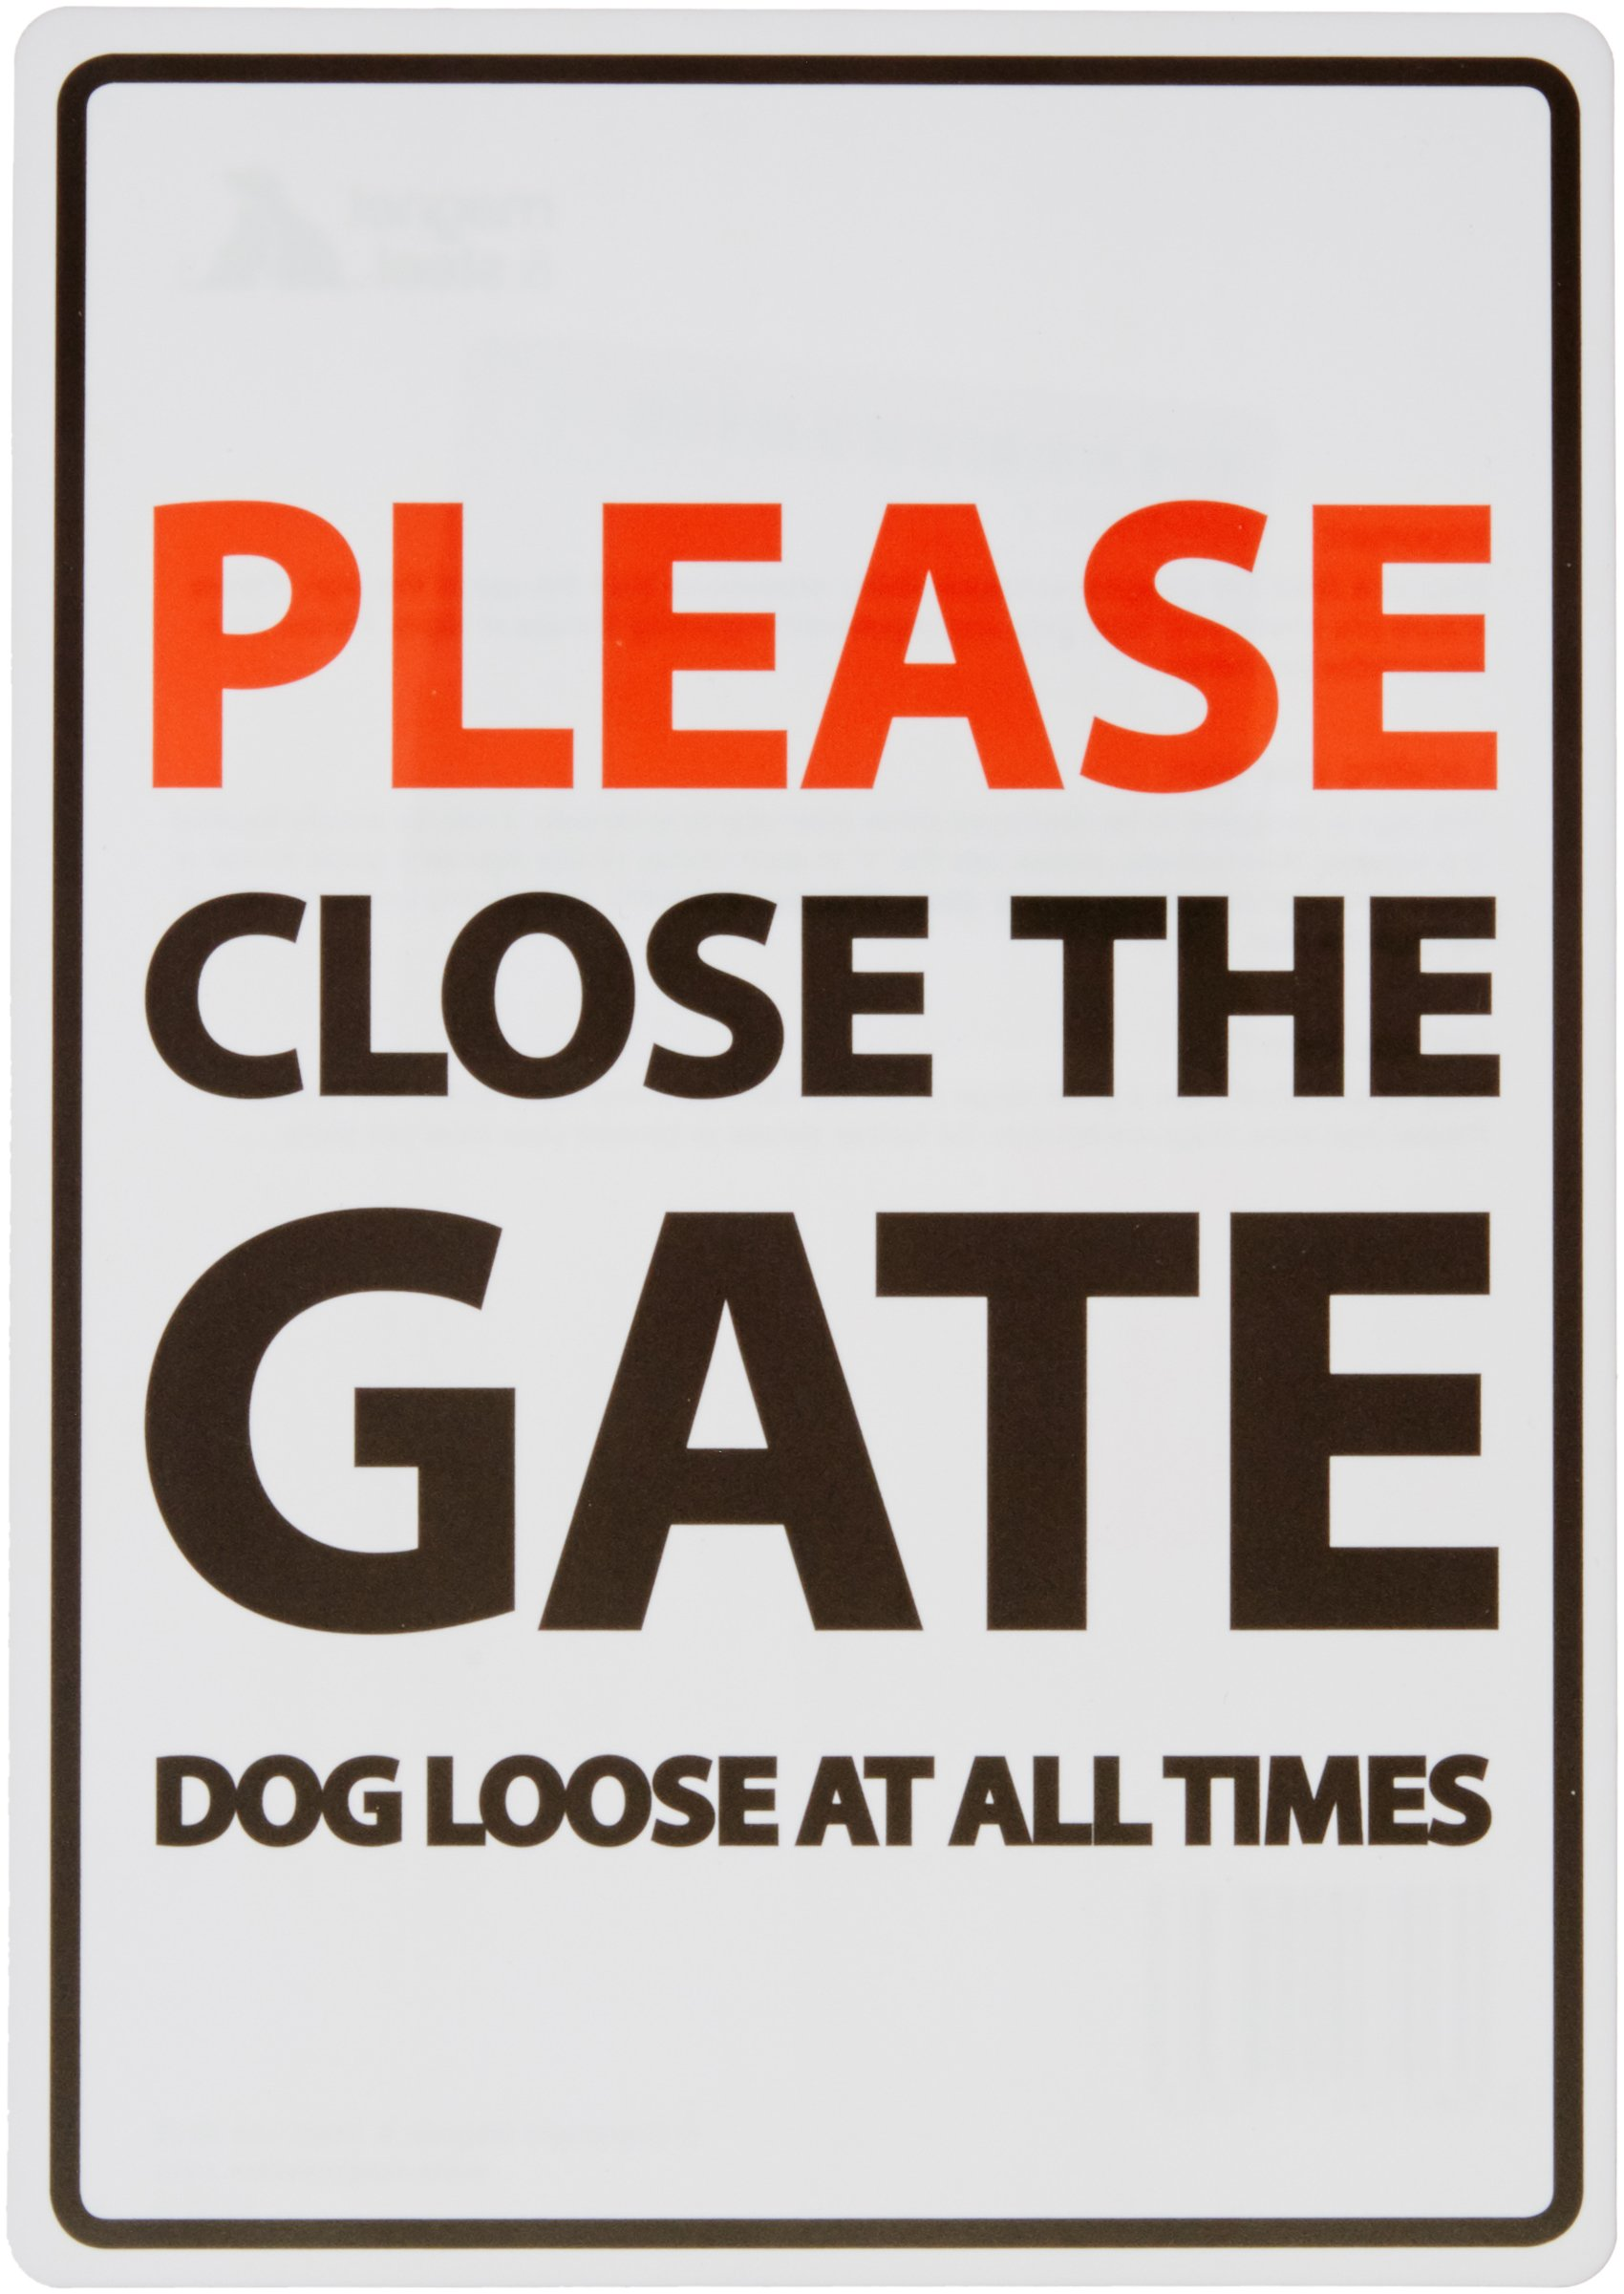 dog supplies online please close the gate dog loose at all times plastic sign